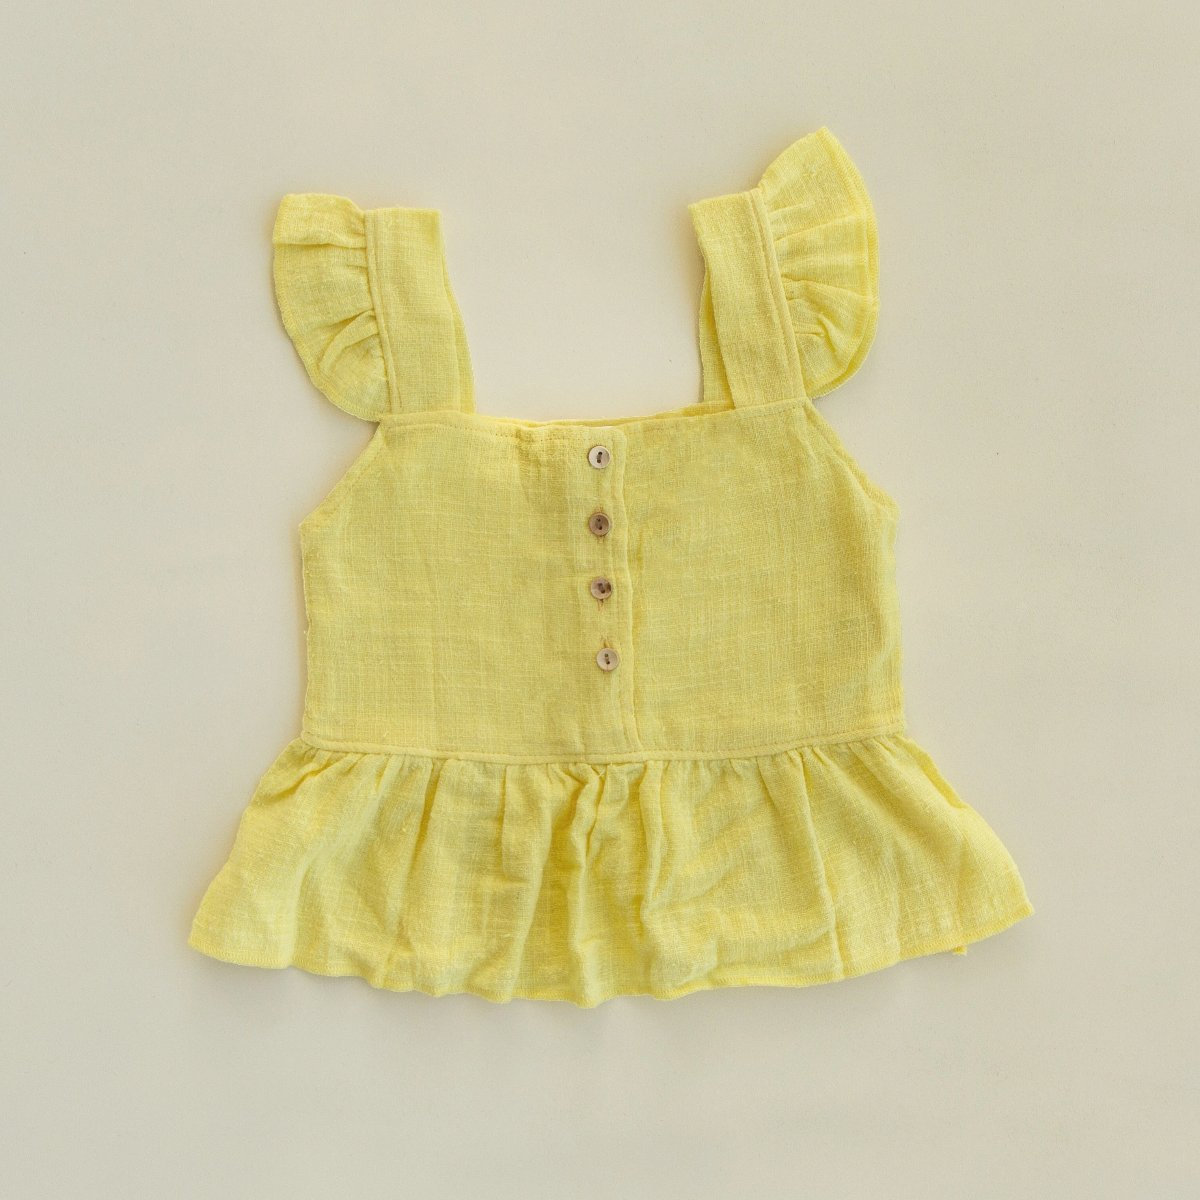 US stockist of Fable & Ford's Sienna Top in Lemon Linen